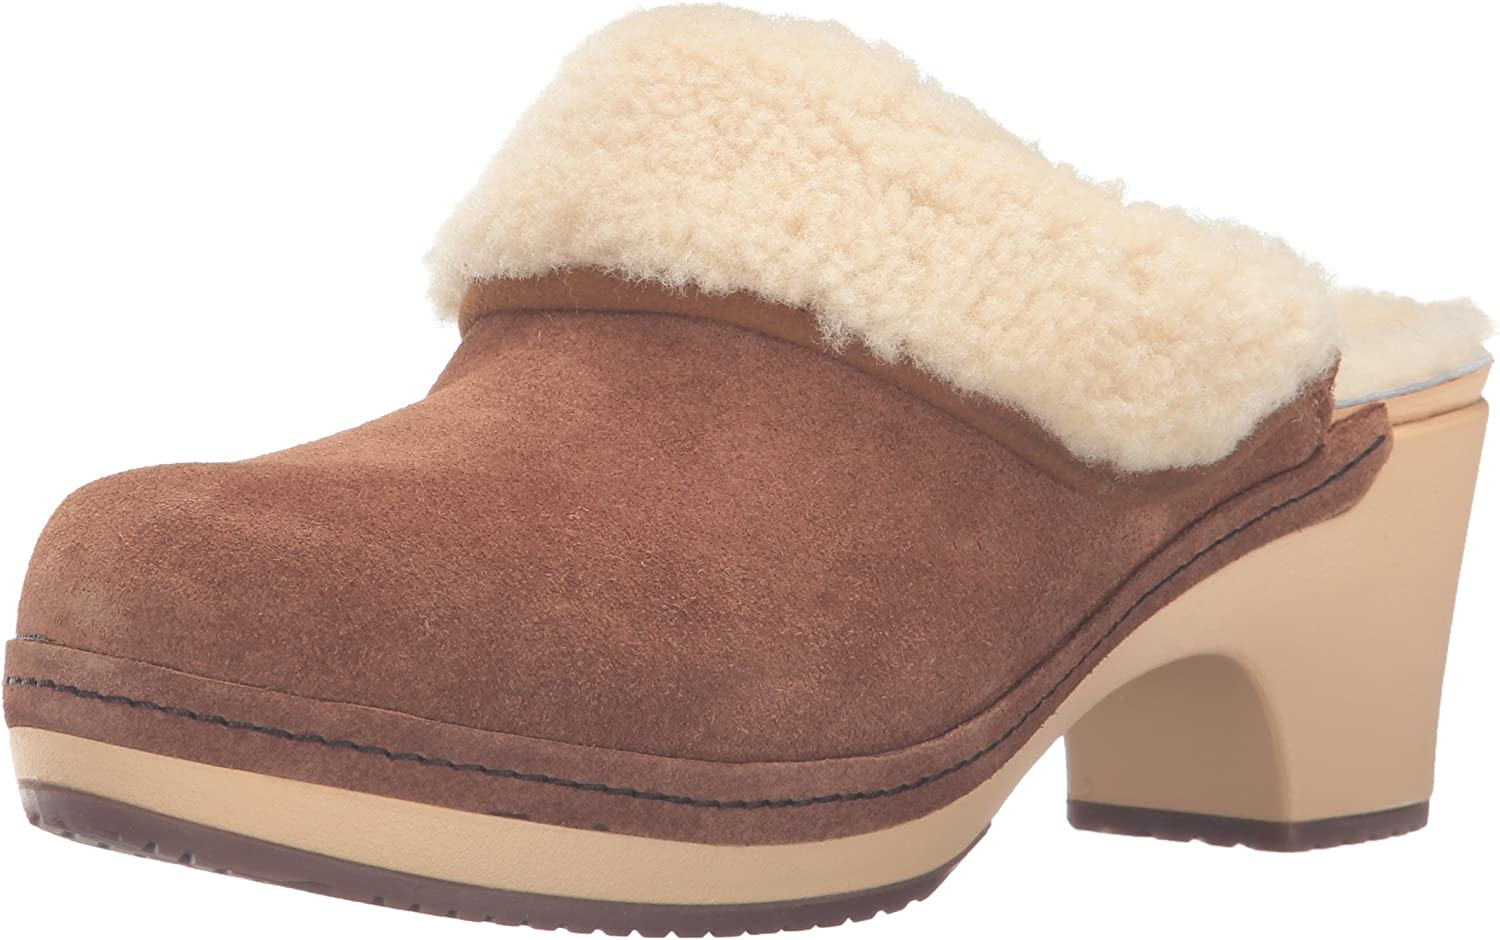 Sarah Luxe Lined Clog Mule